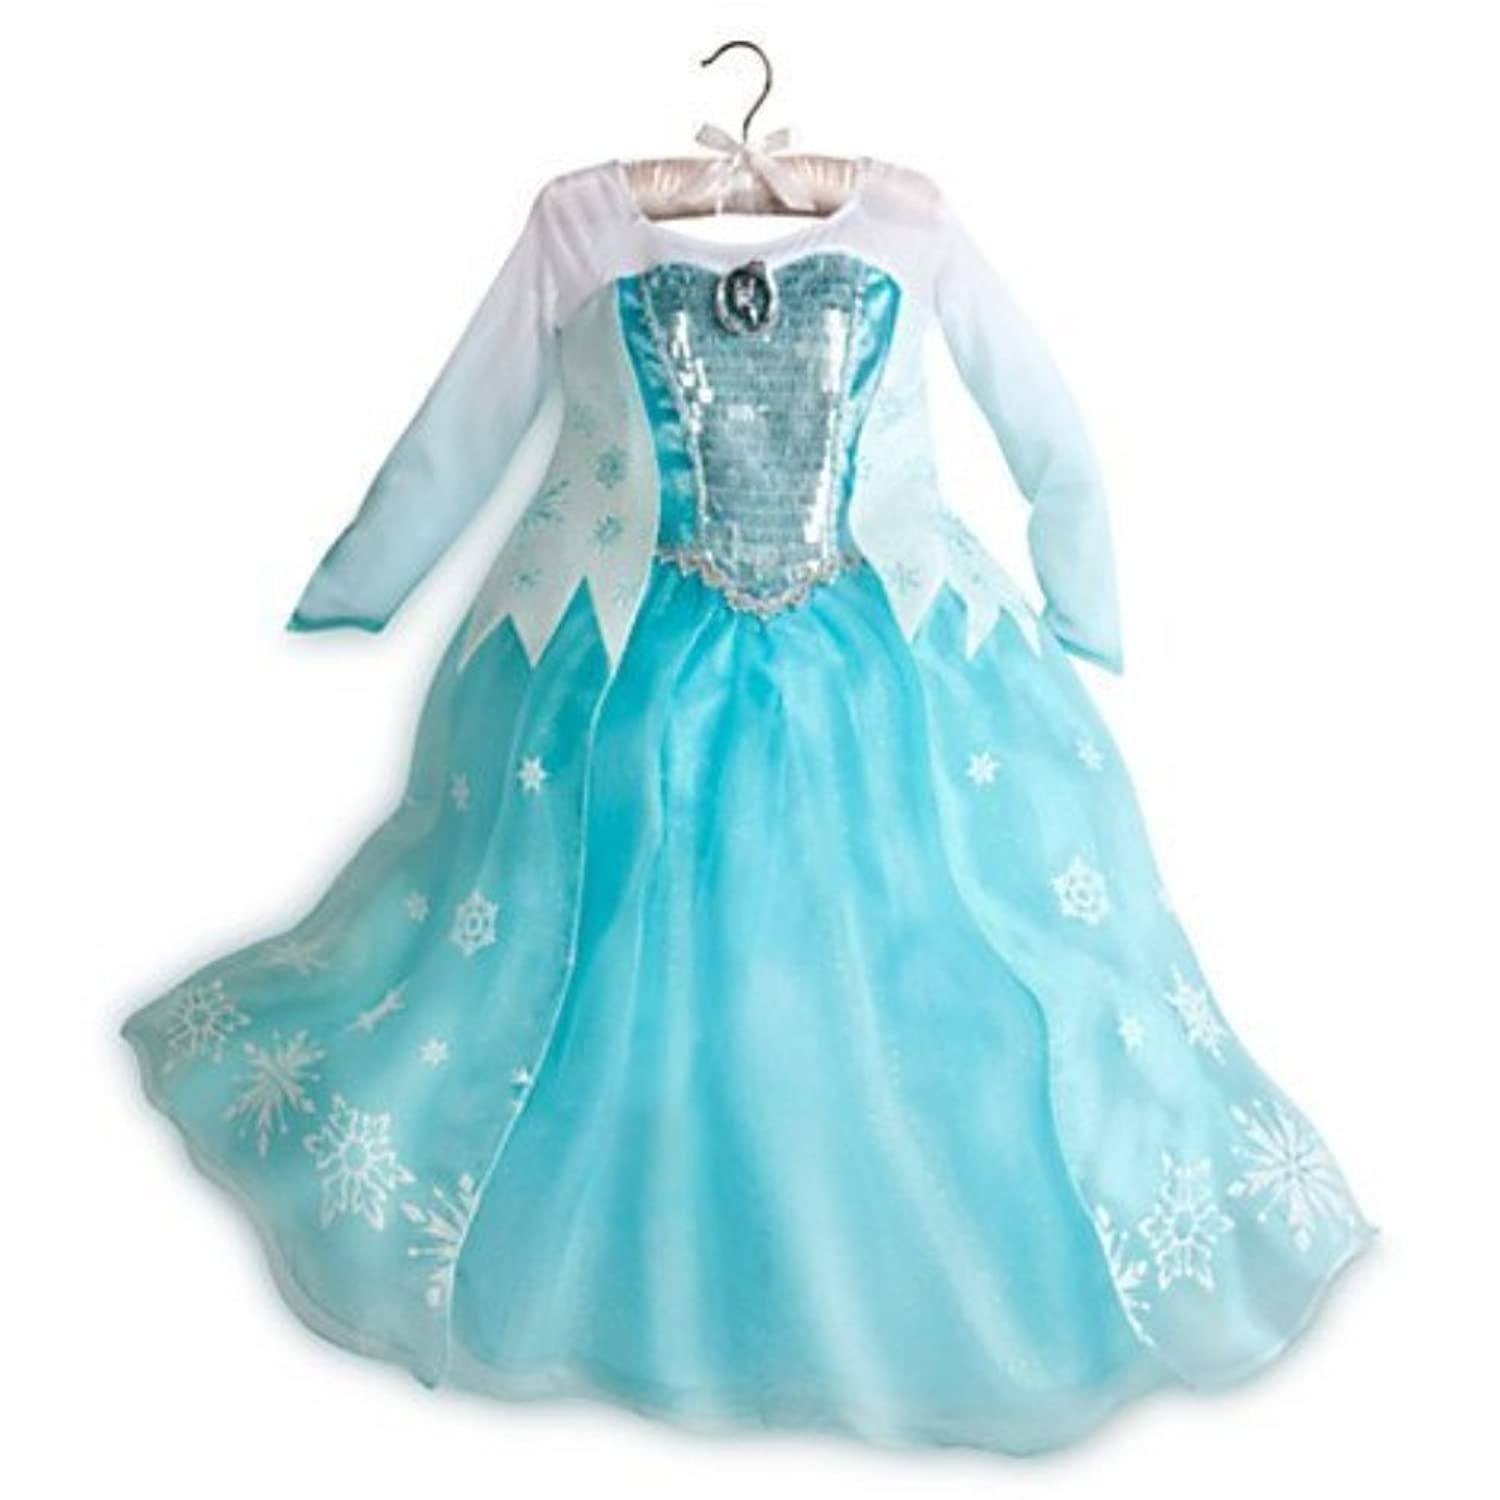 Amazon.com: Disney Store Frozen Princess Elsa Costume Dress 2014 ...